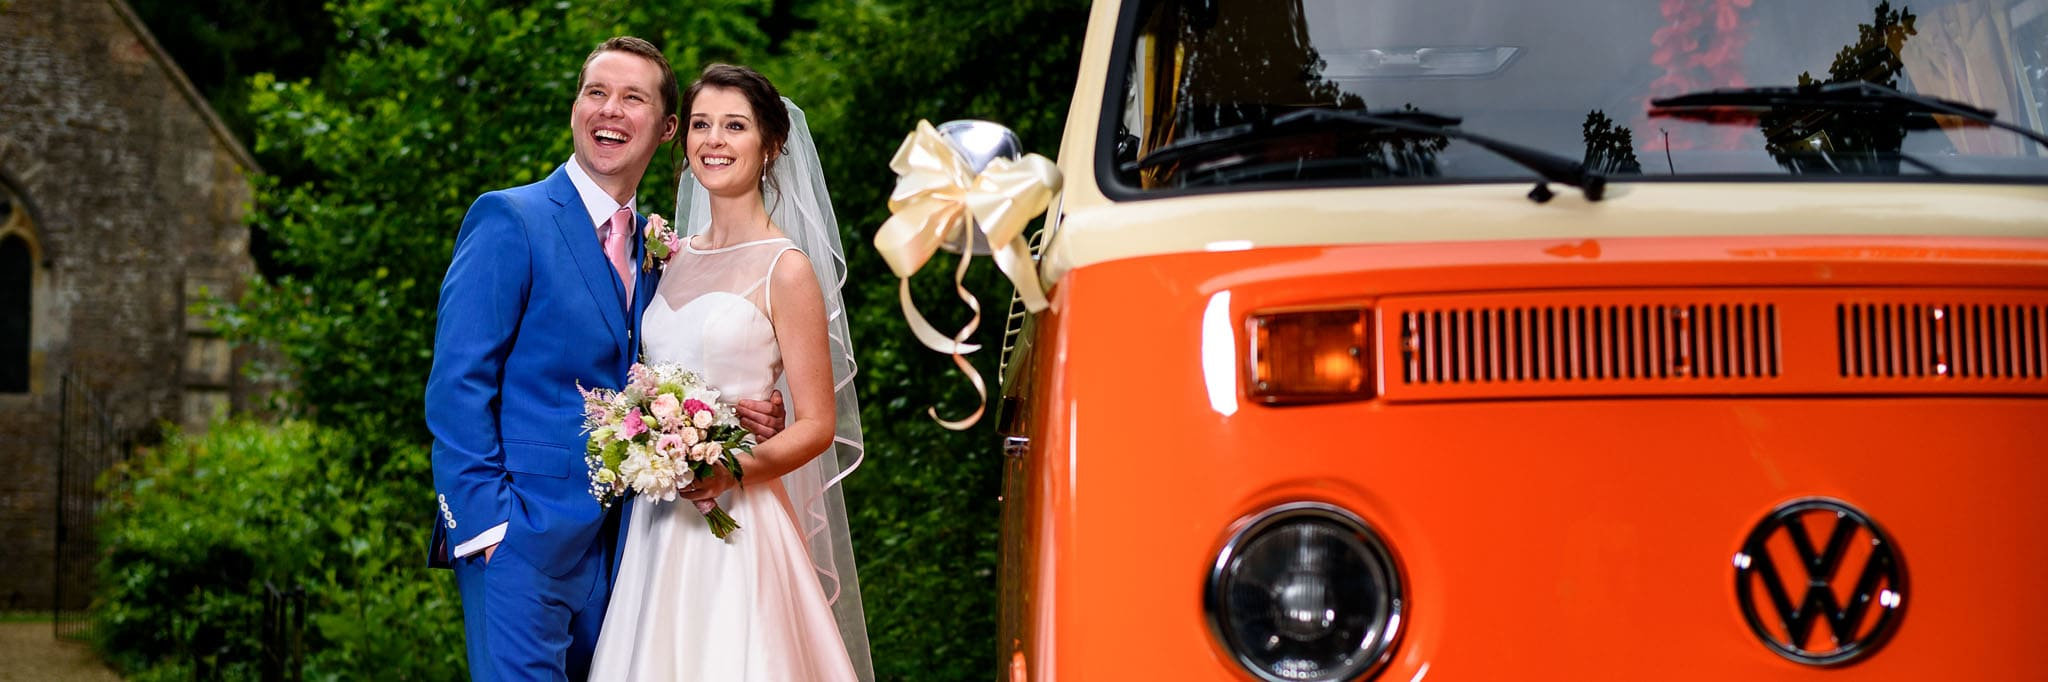 the happy couple next to a vintage VW camper van